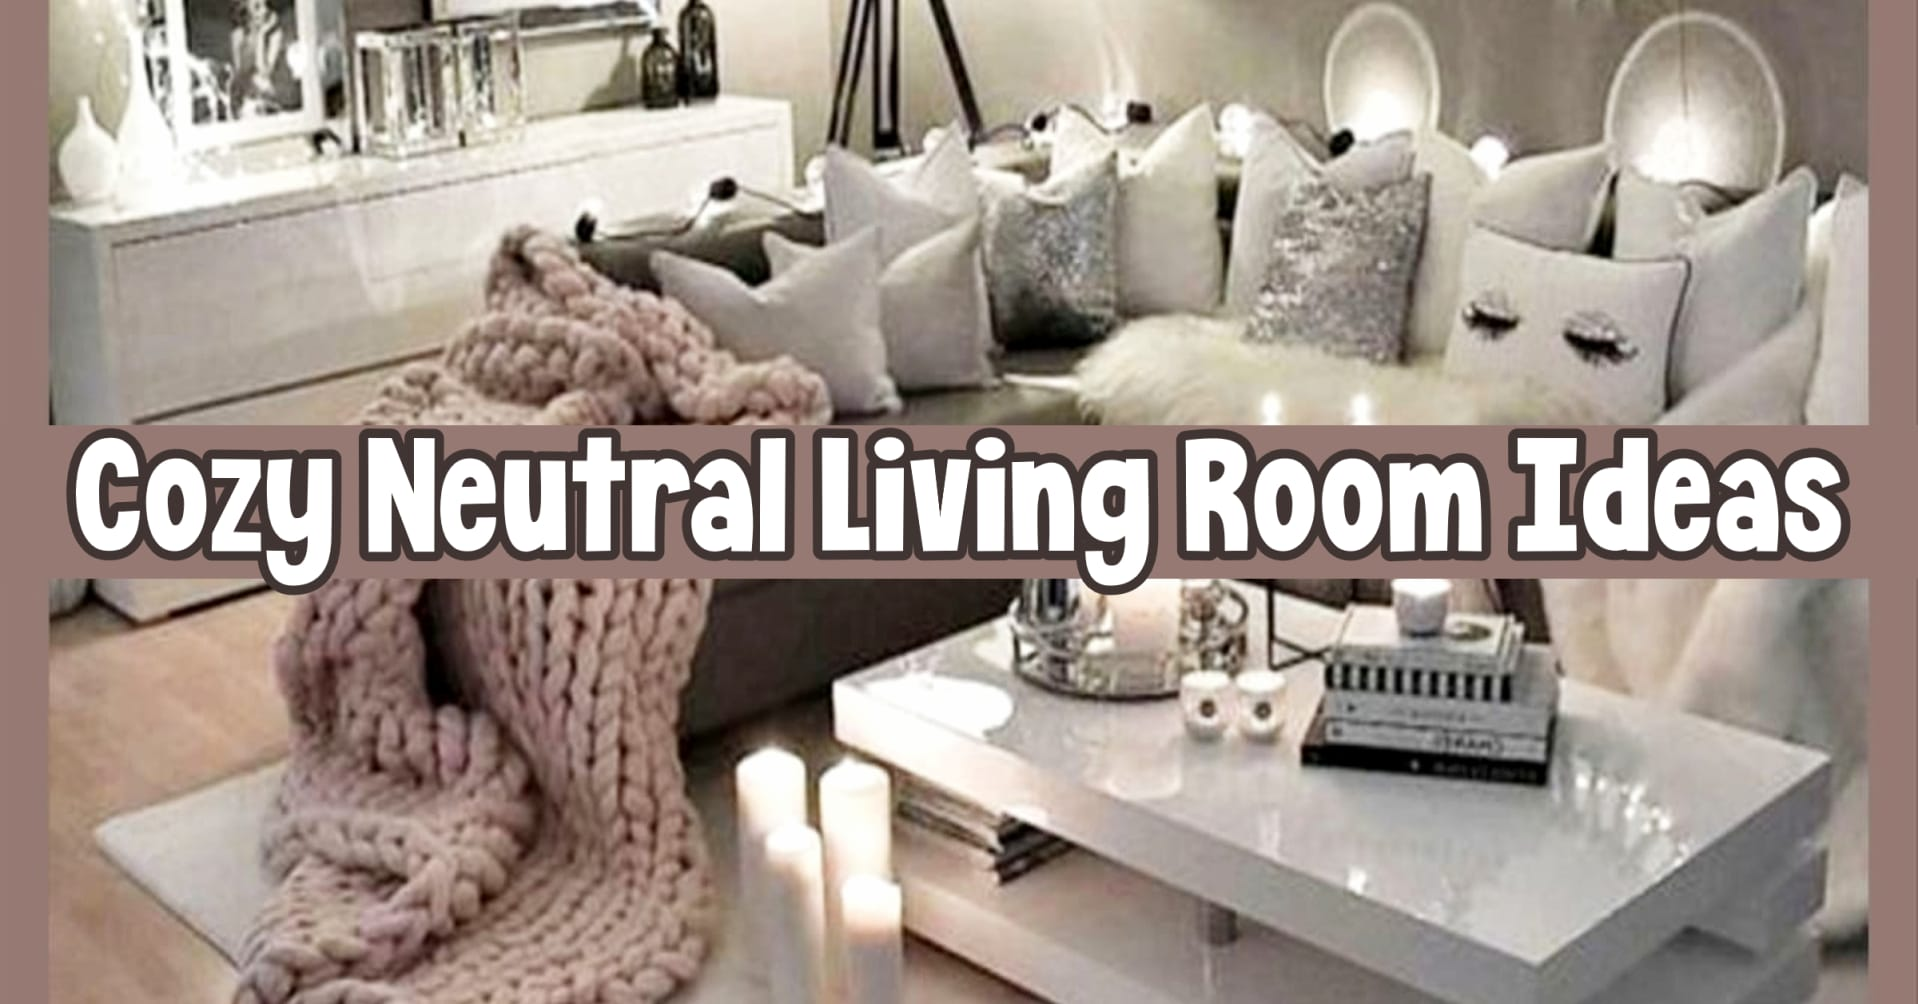 living room ideas - cozy neutral living room decorating ideas - gray earthy living room, den and family room decor ideas on a budget